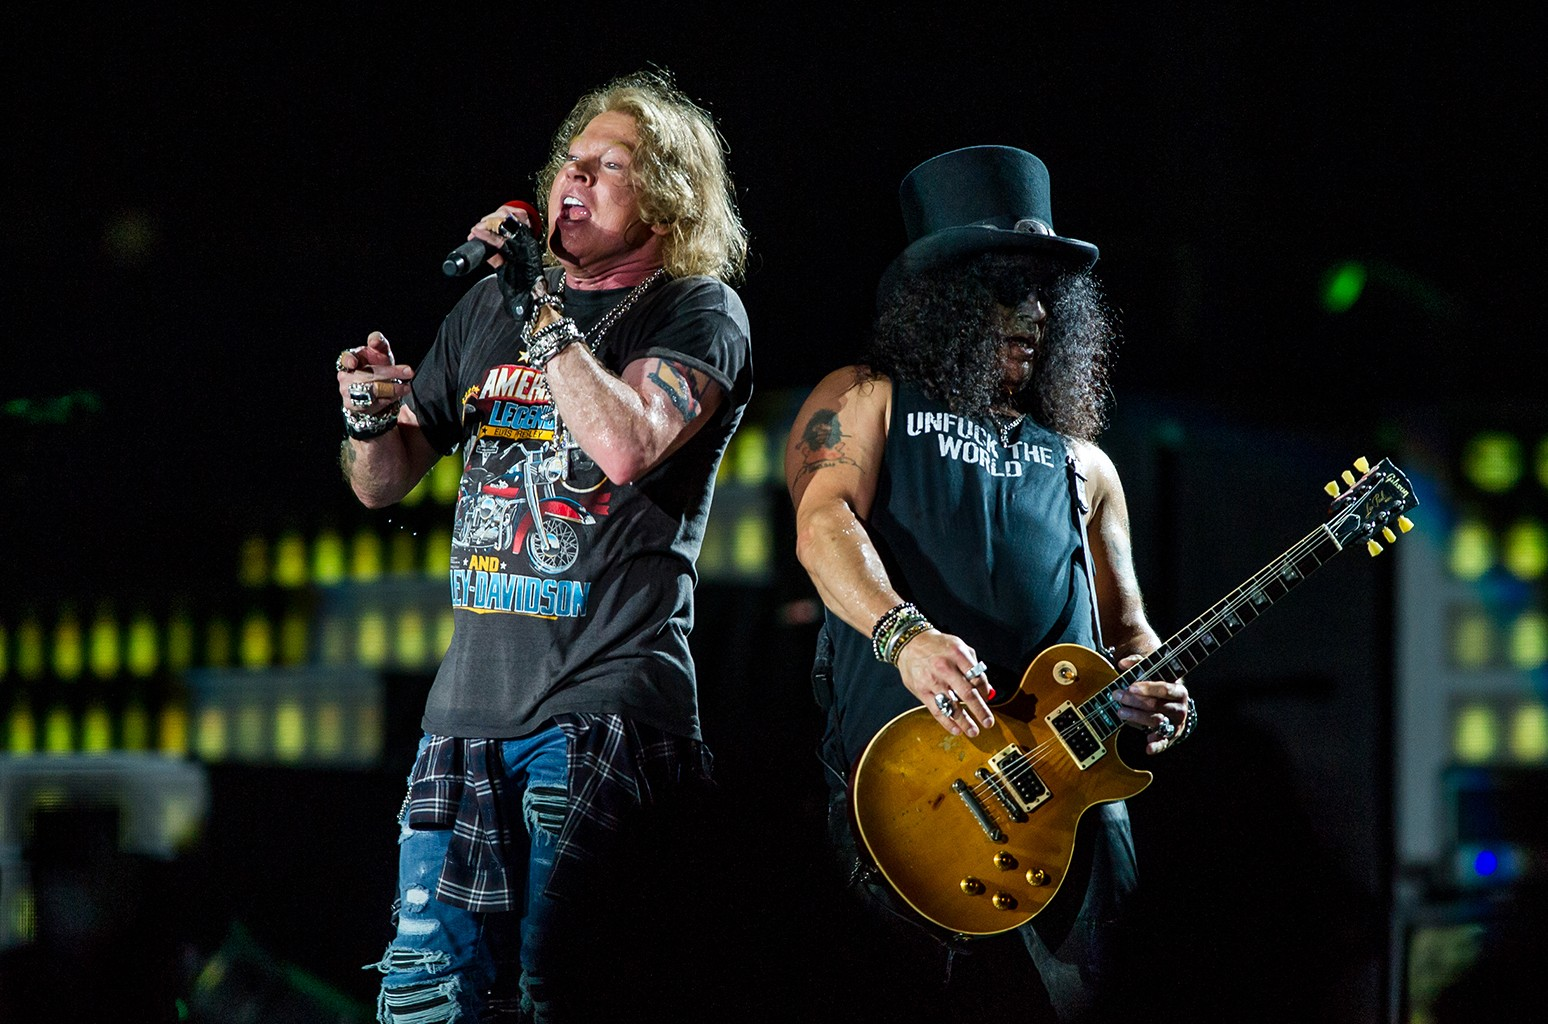 Axl Rose and Slash of Guns 'N' Roses